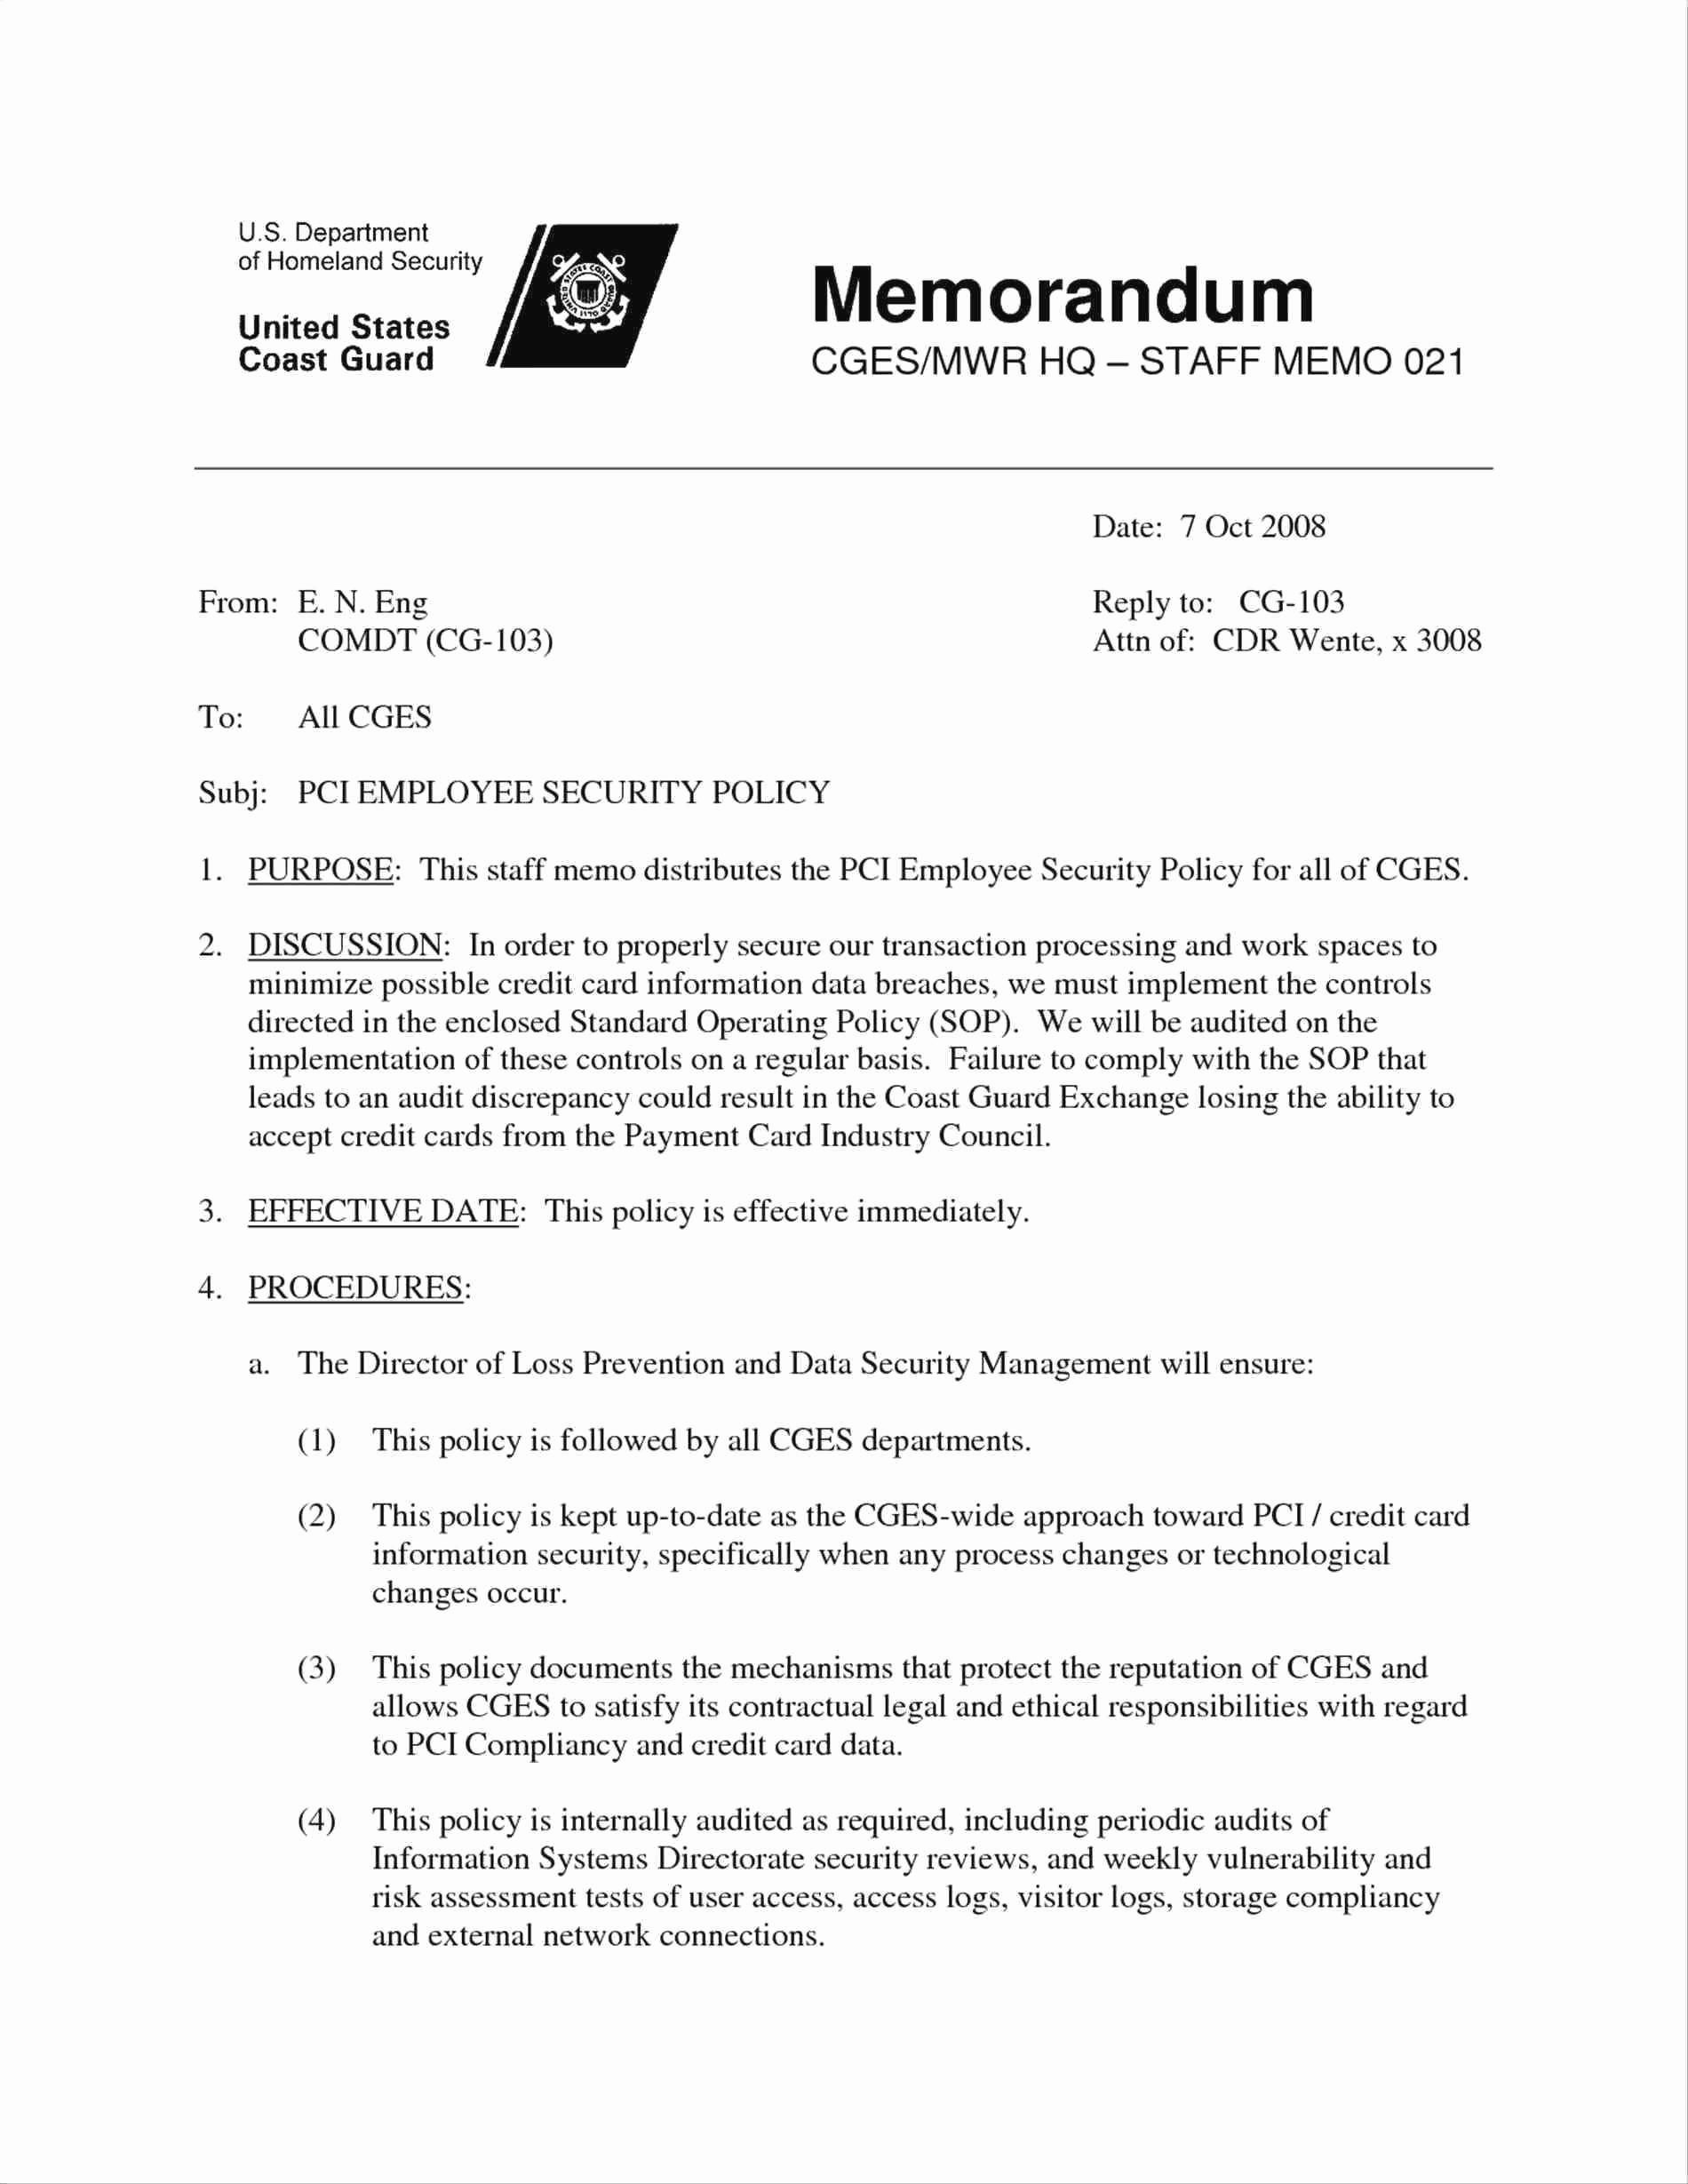 Cyber Security Policy Template Awesome Beautiful Cyber Security Policy Template Pdf